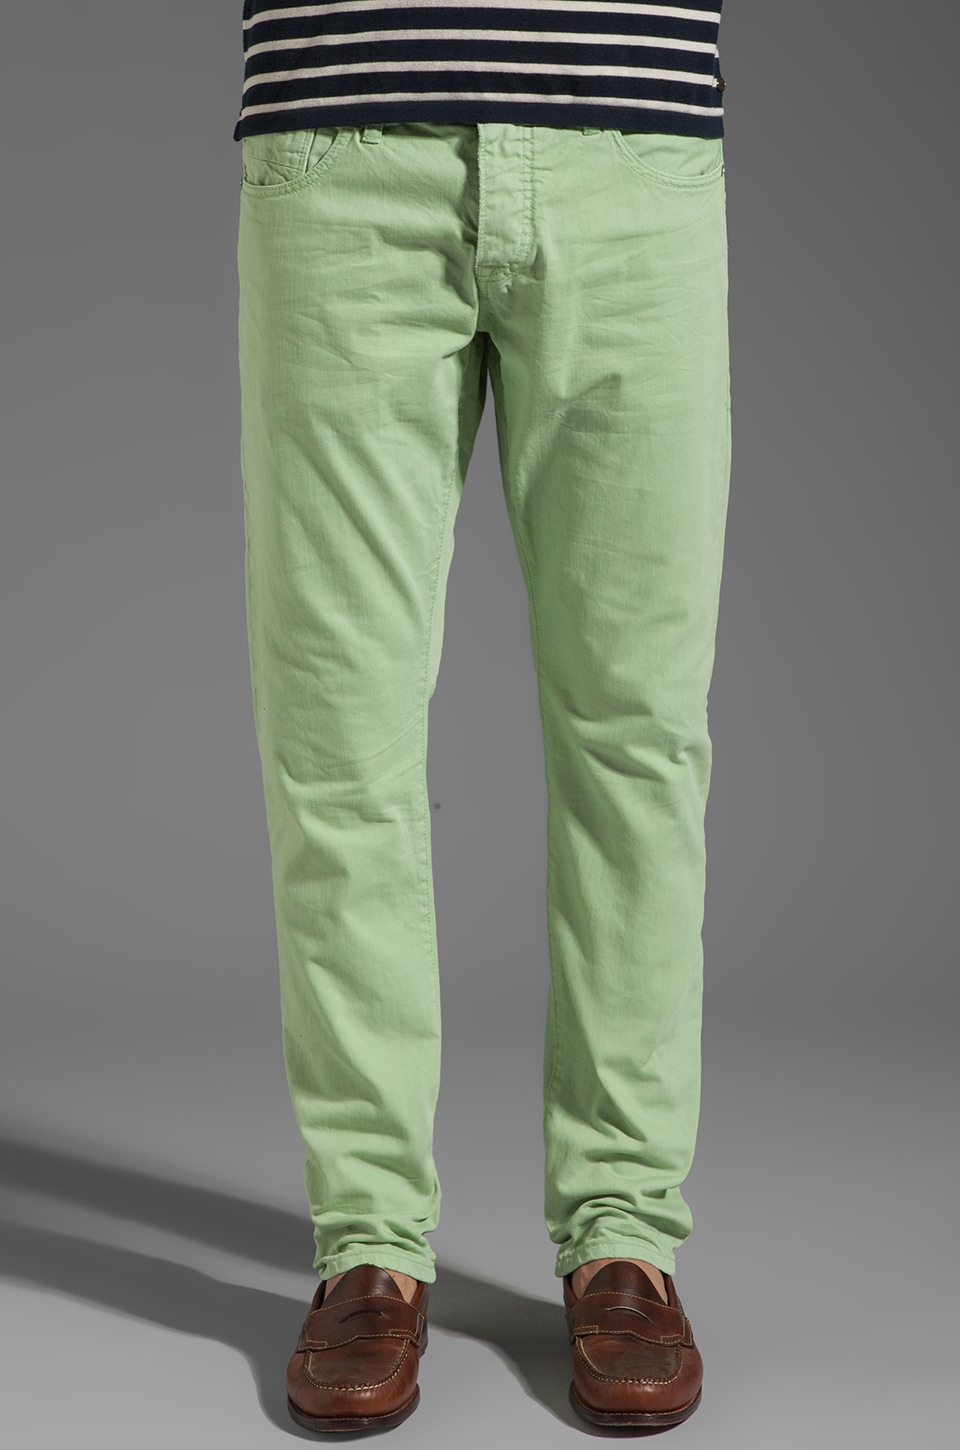 Scotch & Soda Ralston Slim Garment Dye en Mint